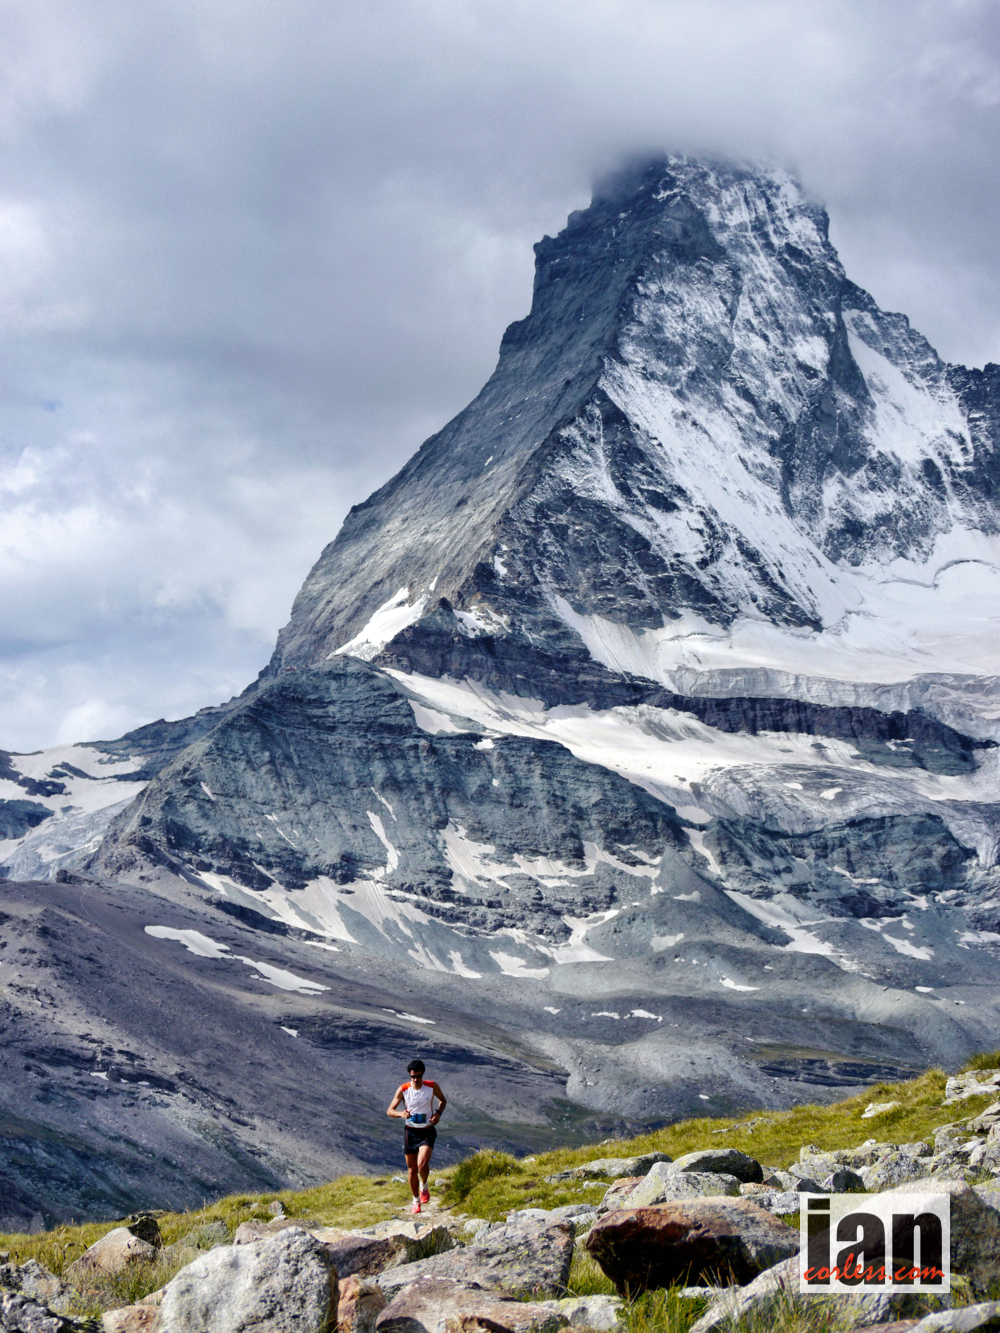 8 Best Matterhorn ultraks images in 2016 | Running equipment